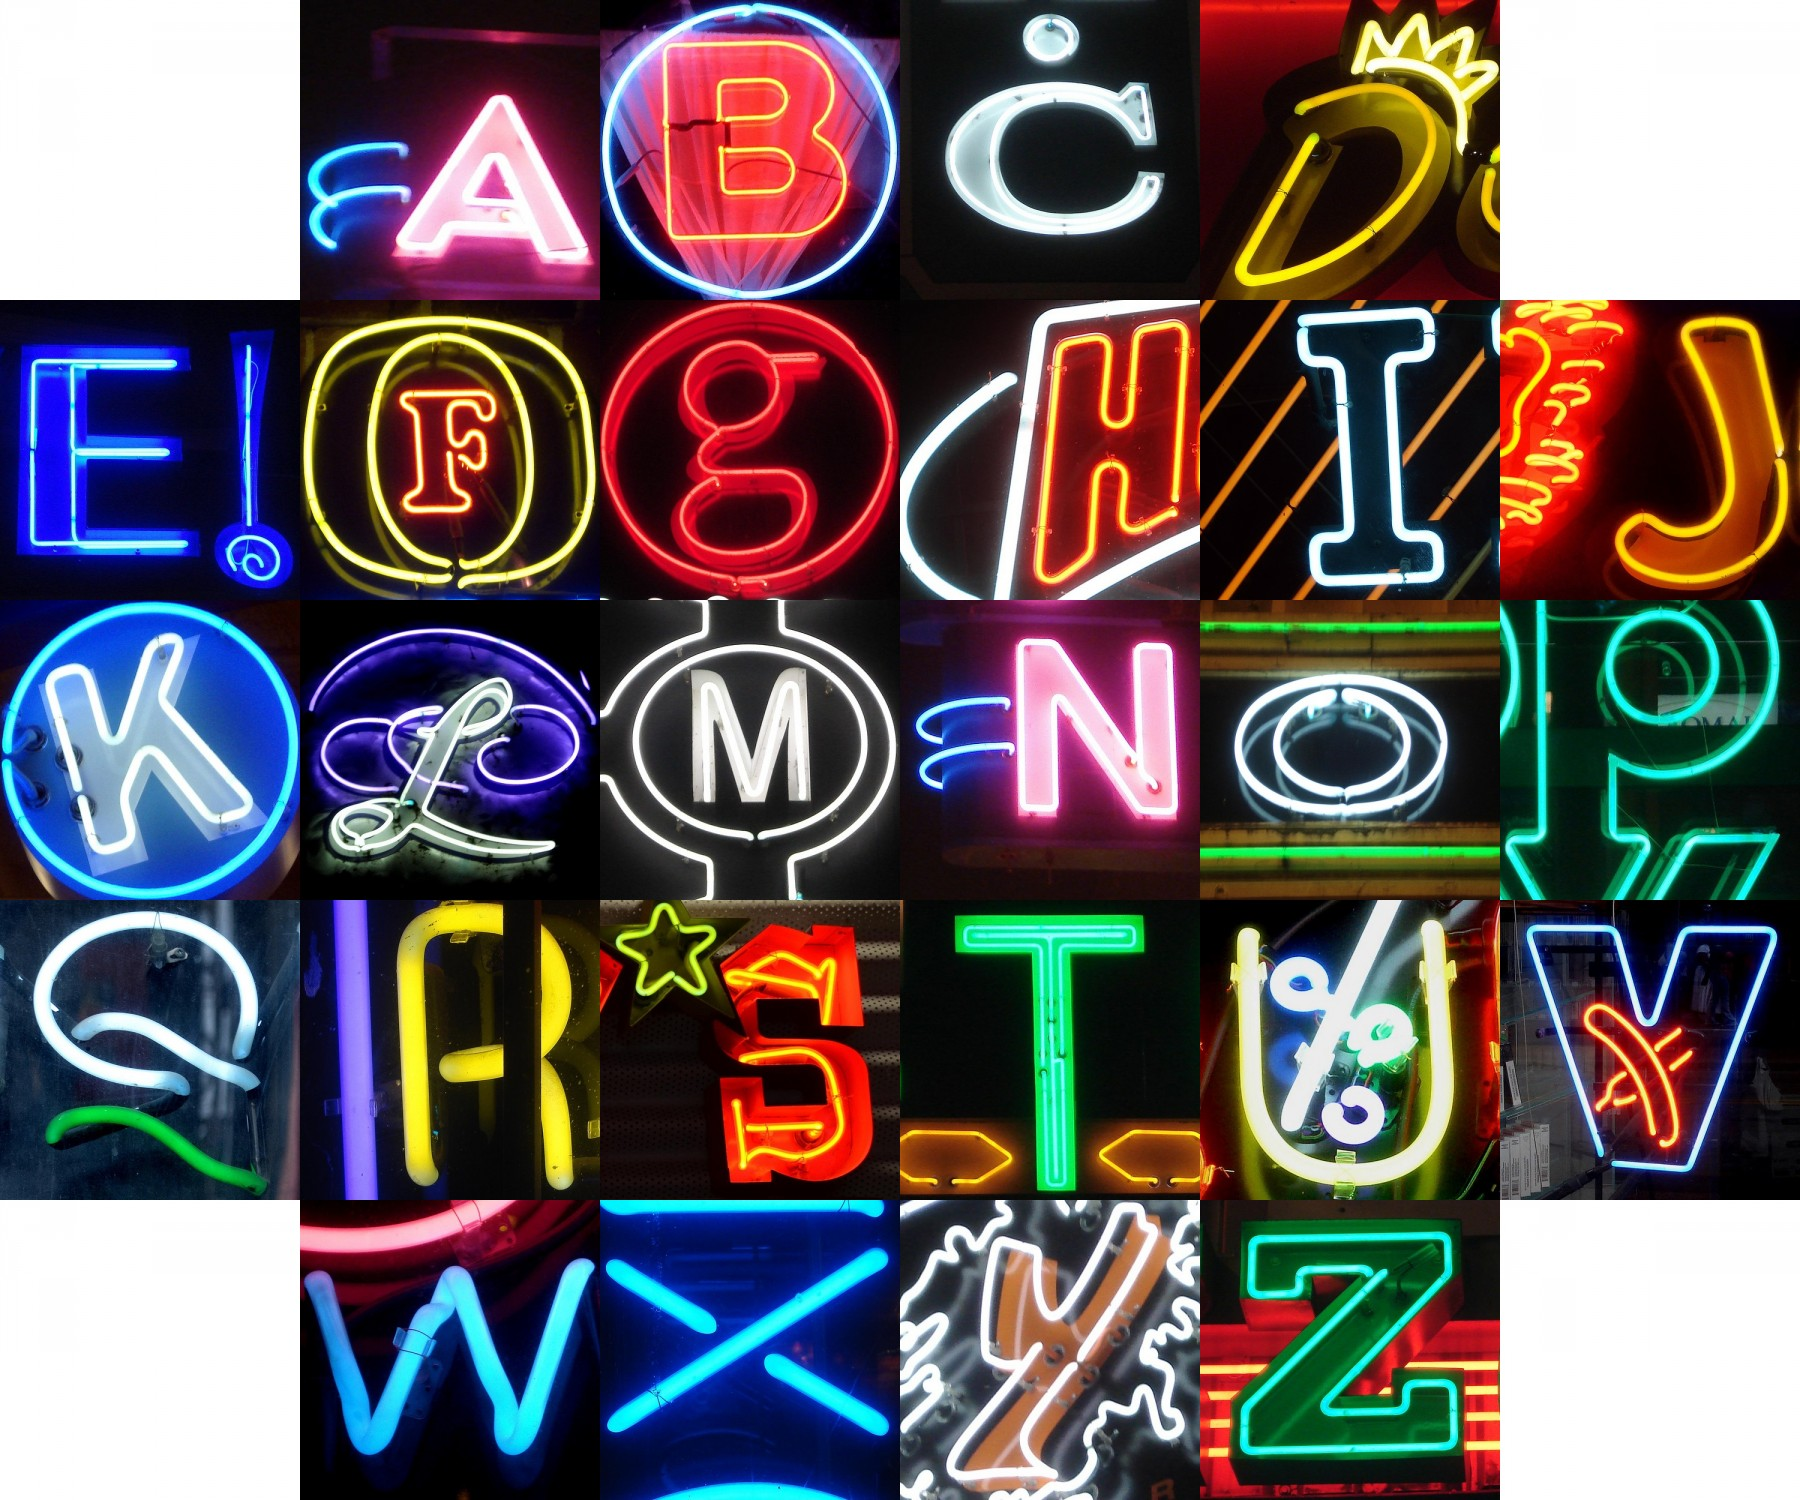 Neon alphabet flickr photo sharing for Large neon letters